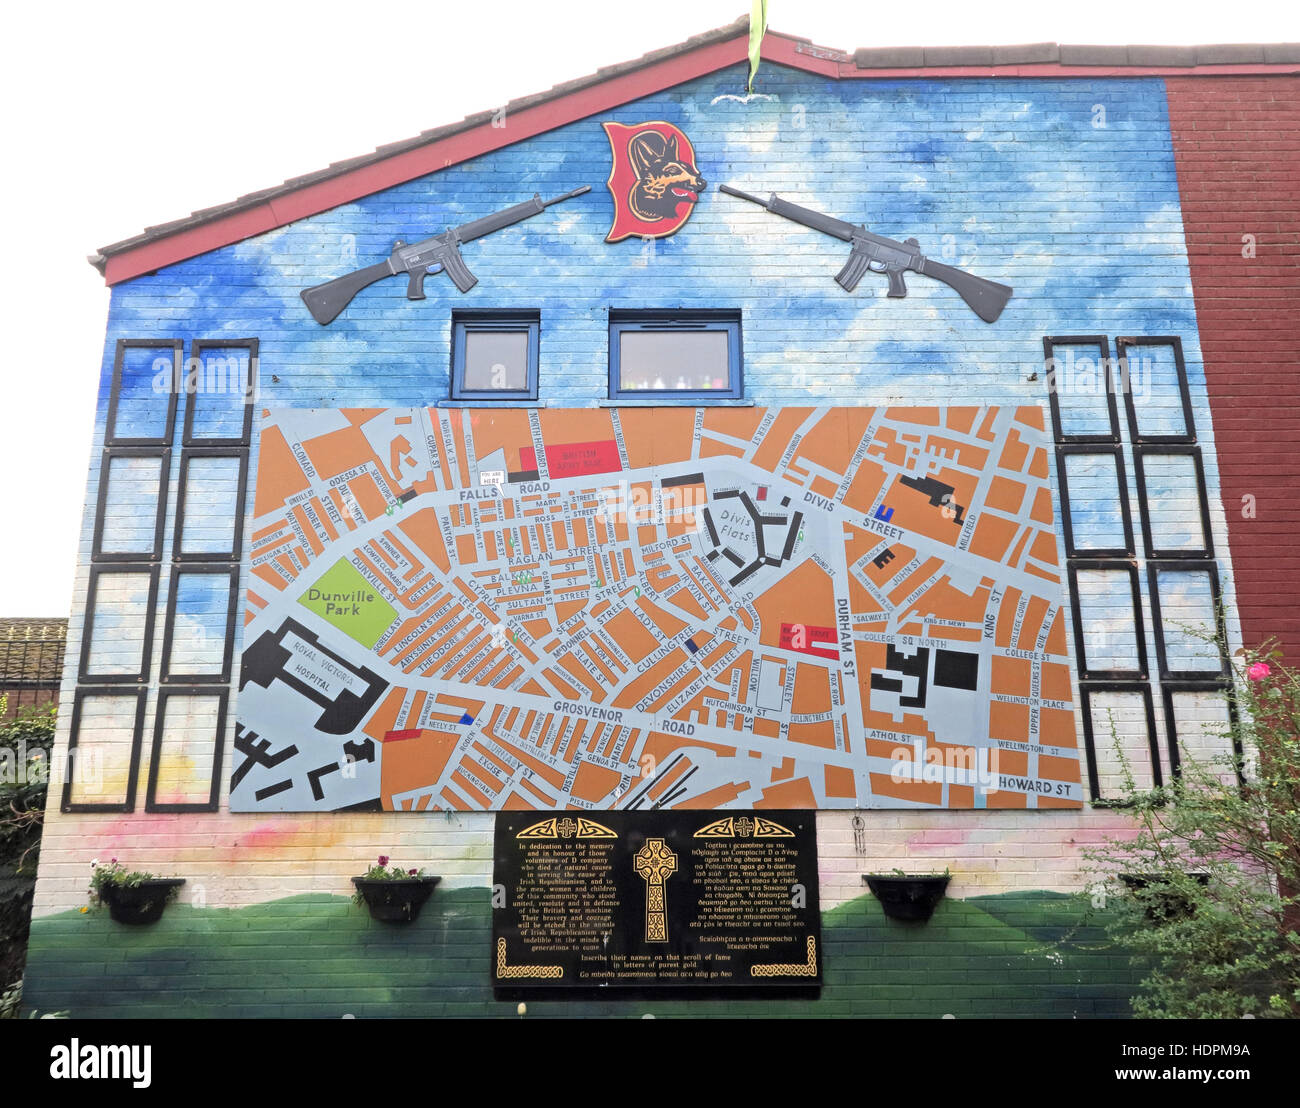 Falls,Road,rd,Garden,of,remembrance,IRA,members,deceased,ex-prisoners,West,Belfast,NI,UK,Falls,Cultural,Society,map,at,mapping,streets,roads,of,west,Belfast,rifle,gun,guns,arms,Falls Cultural Society,map at,Roads Of West Belfast,GoTonySmith,@HotpixUK,Tony,Smith,UK,GB,Great,Britain,United,Kingdom,Irish,British,Ireland,problem,with,problem with,issue with,NI,Northern,Northern Ireland,Belfast,City,Centre,Art,Artists,the,troubles,The Troubles,Good Friday Agreement,Peace,honour,painting,wall,walls,tribute,republicanism,Fight,Justice,West,Beal,feirste,martyrs,social,tour,tourism,tourists,urban,six,counties,6,backdrop,county,Antrim,Catholic,community,Buy Pictures of,Buy Images Of,Images of,Stock Images,Tony Smith,United Kingdom,Great Britain,British Isles,Catholic Community